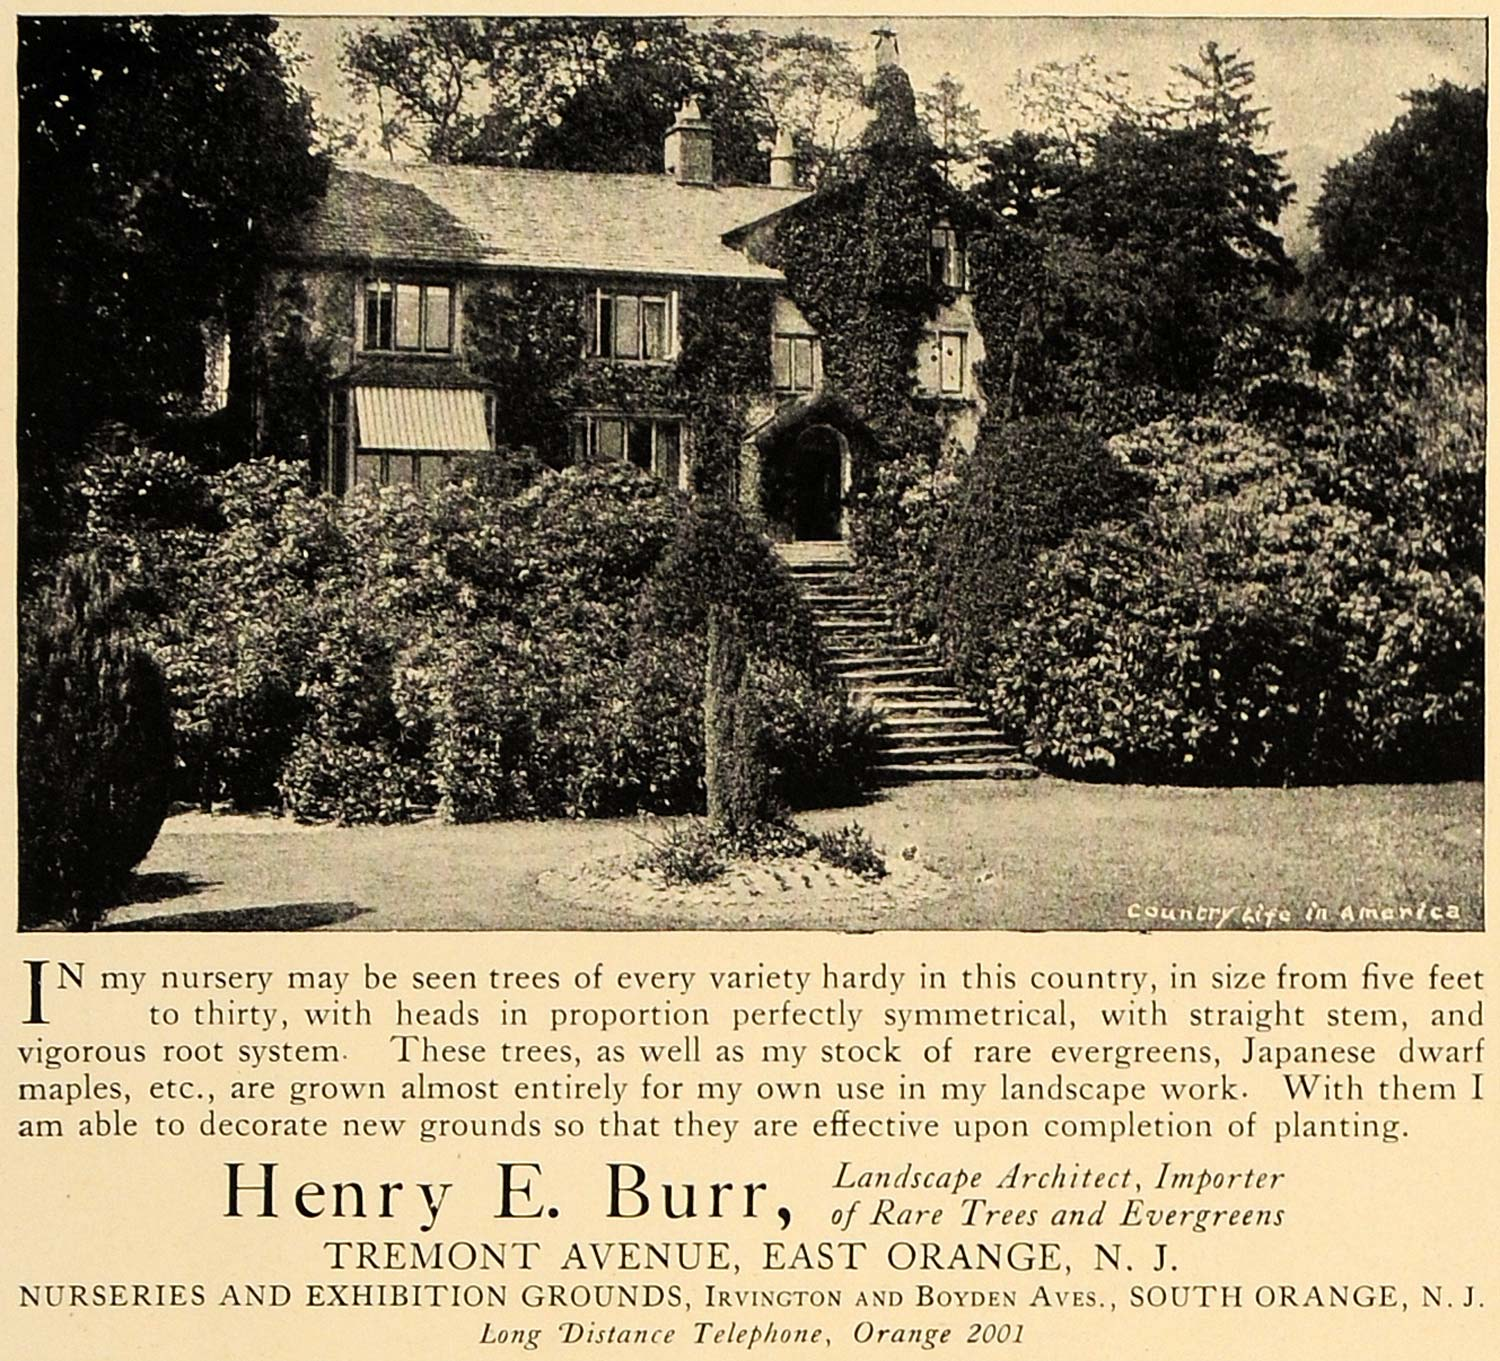 1906 Ad Henry E. Burr Landscape Architect Nurseries - ORIGINAL ADVERTISING CL4